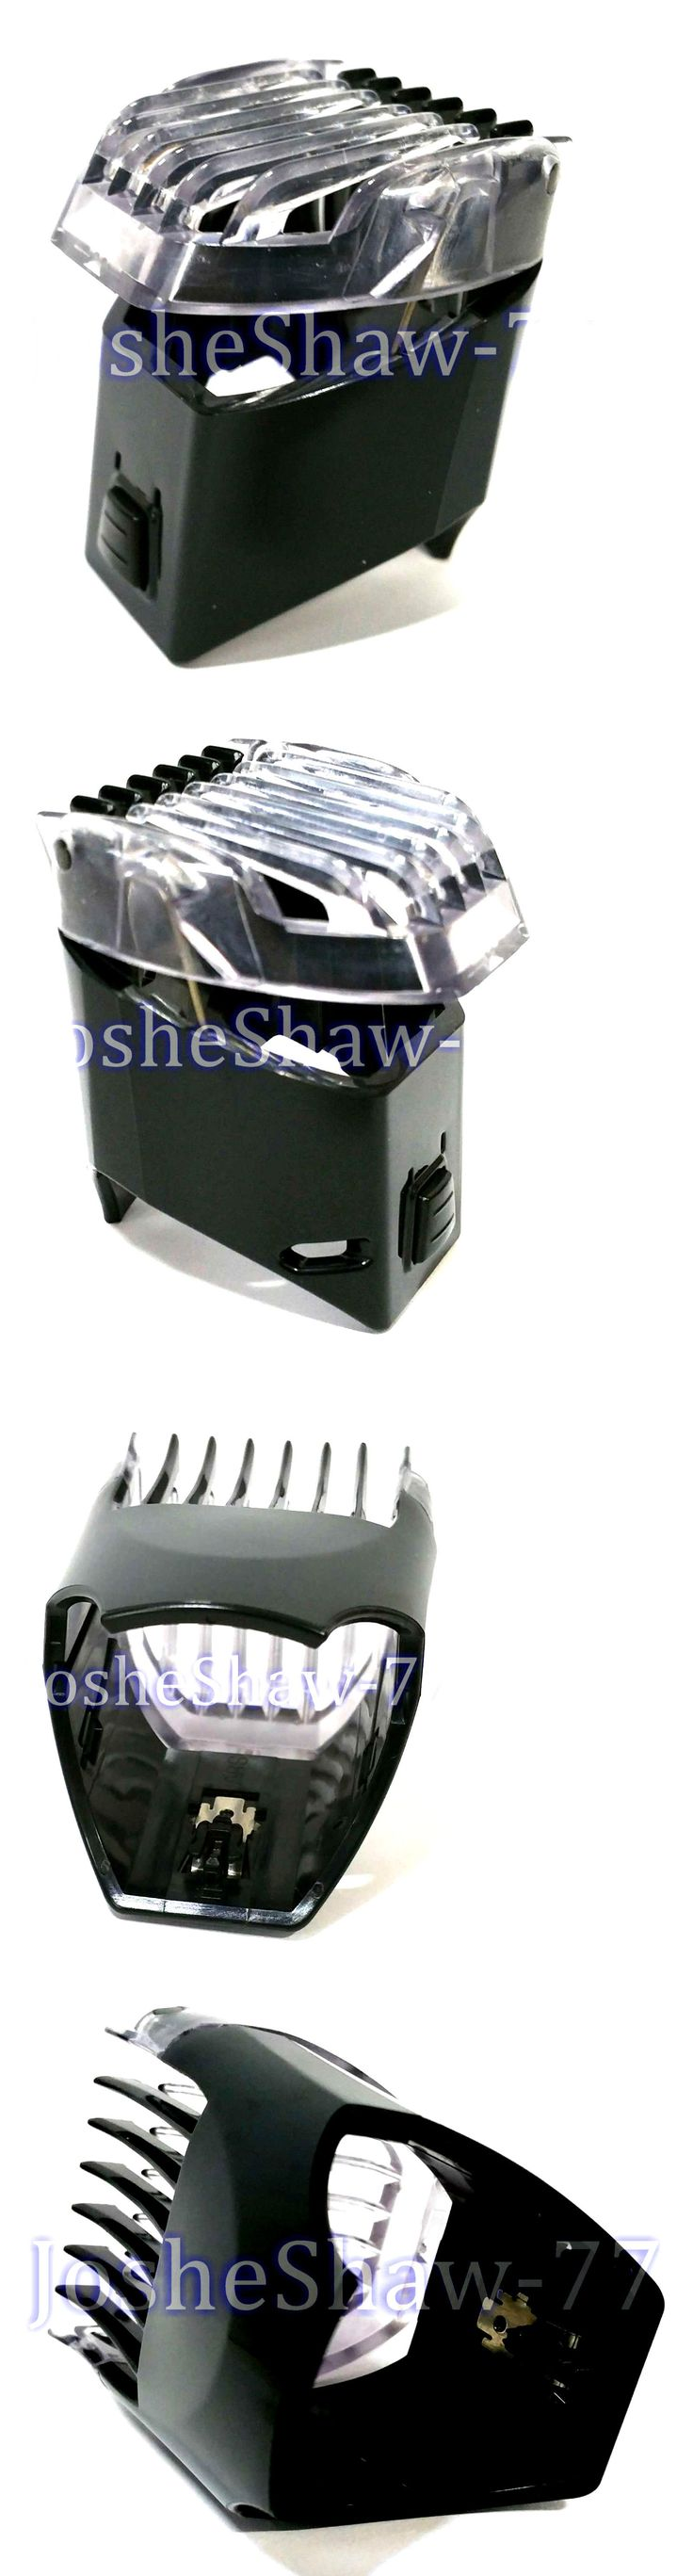 Shaver Parts and Accessories: Philips Norelco G370 G380 G390 Groomer Beard Comb Trimmer Attachment New Genuine -> BUY IT NOW ONLY: $59.97 on eBay!